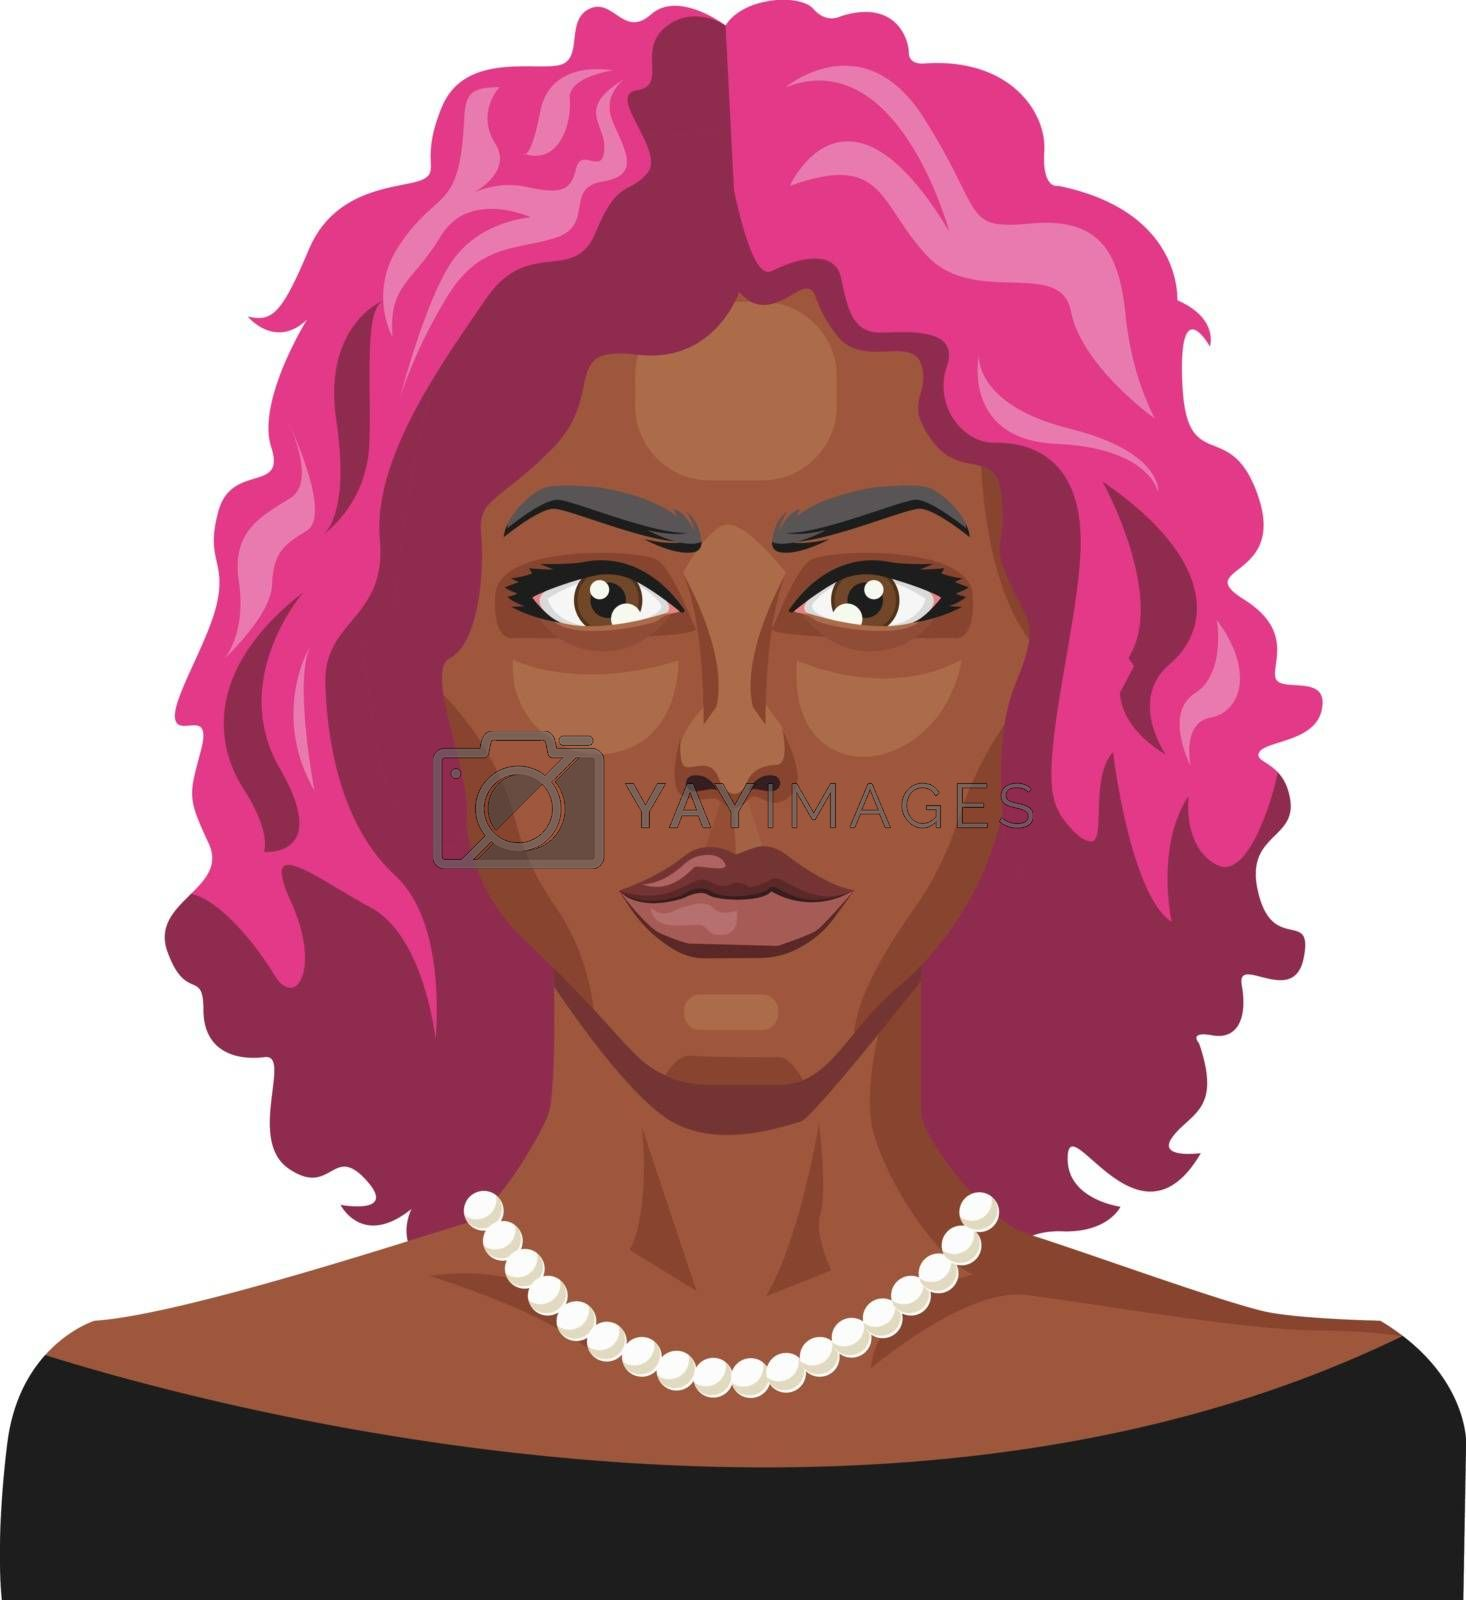 Royalty free image of African girl with pink hair illustration vector on white backgro by Morphart